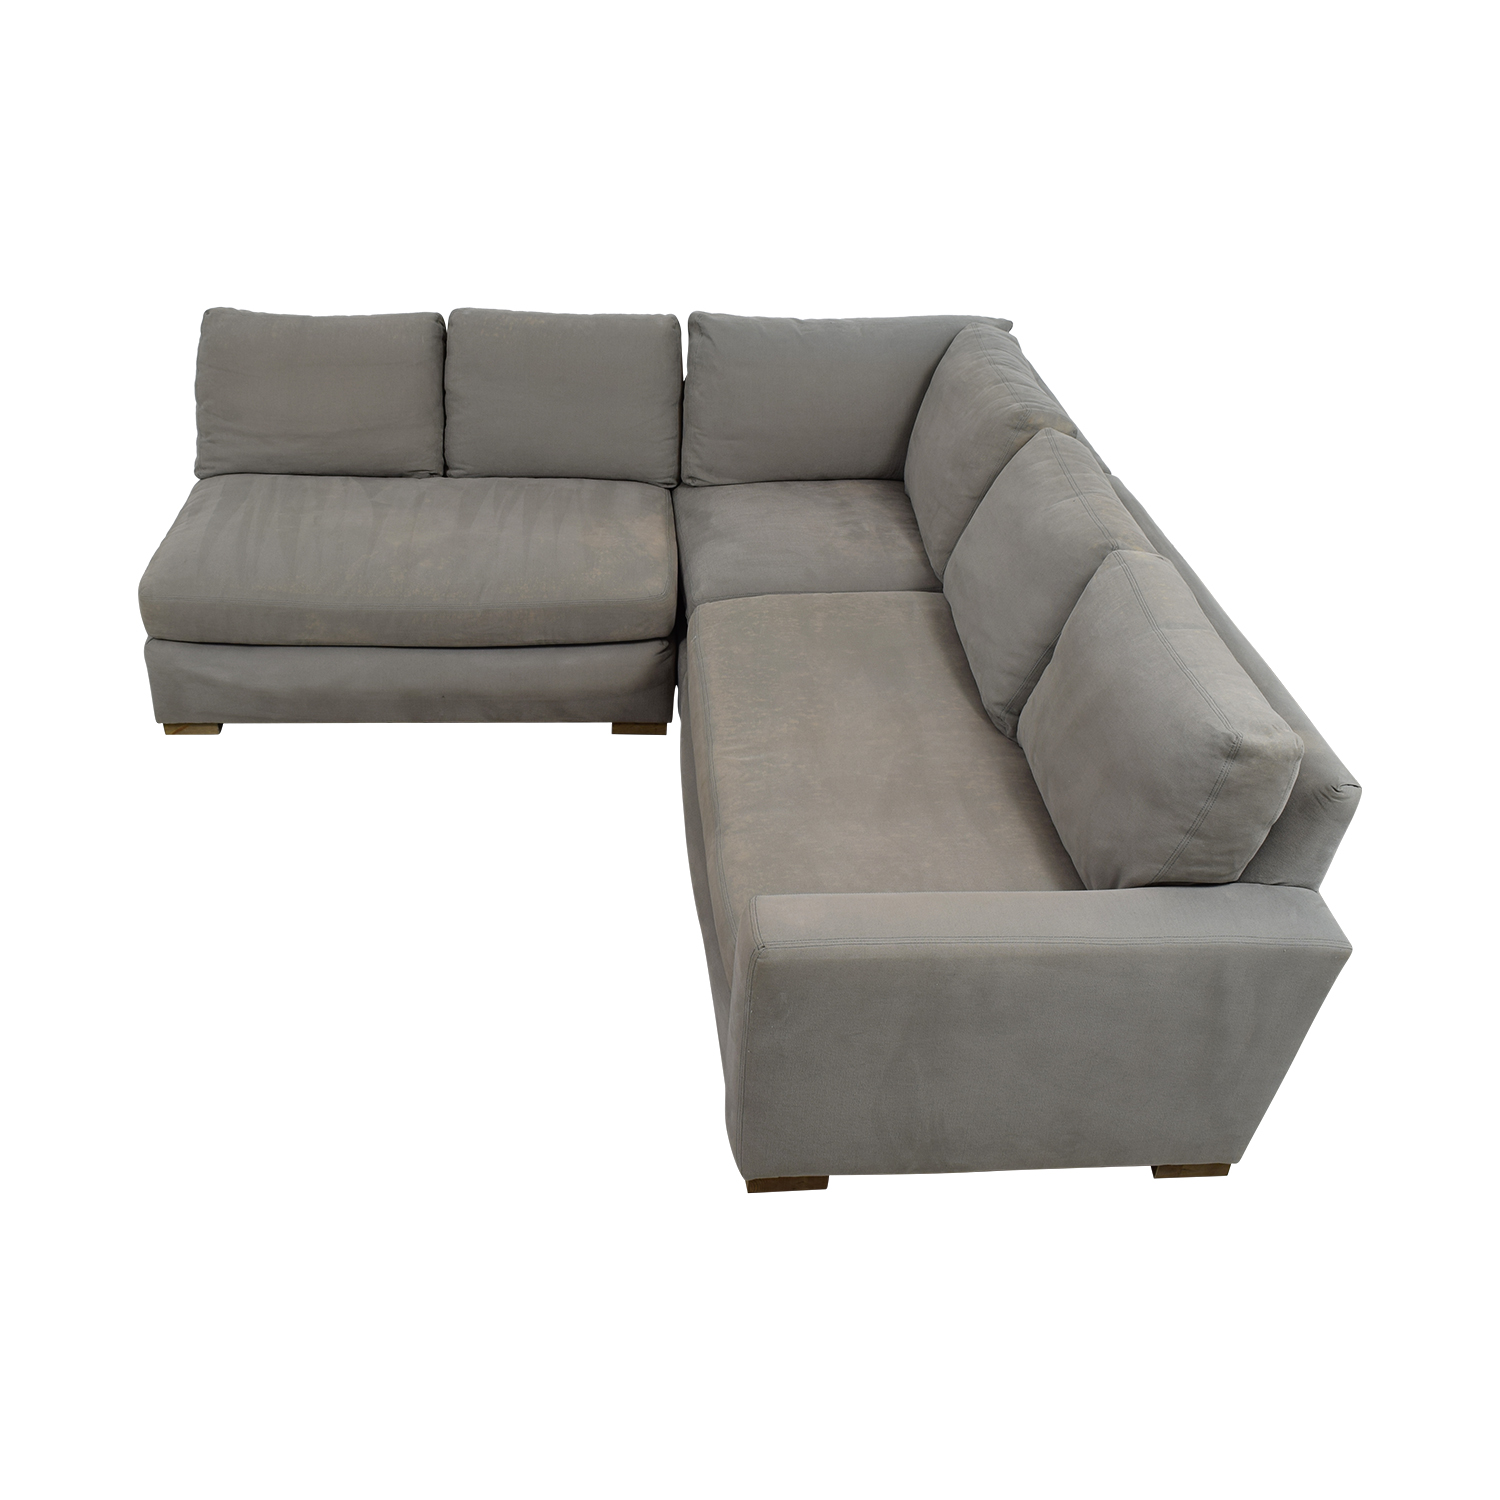 77 OFF  Restoration Hardware Restoration Hardware Grey LShaped Sectional  Sofas